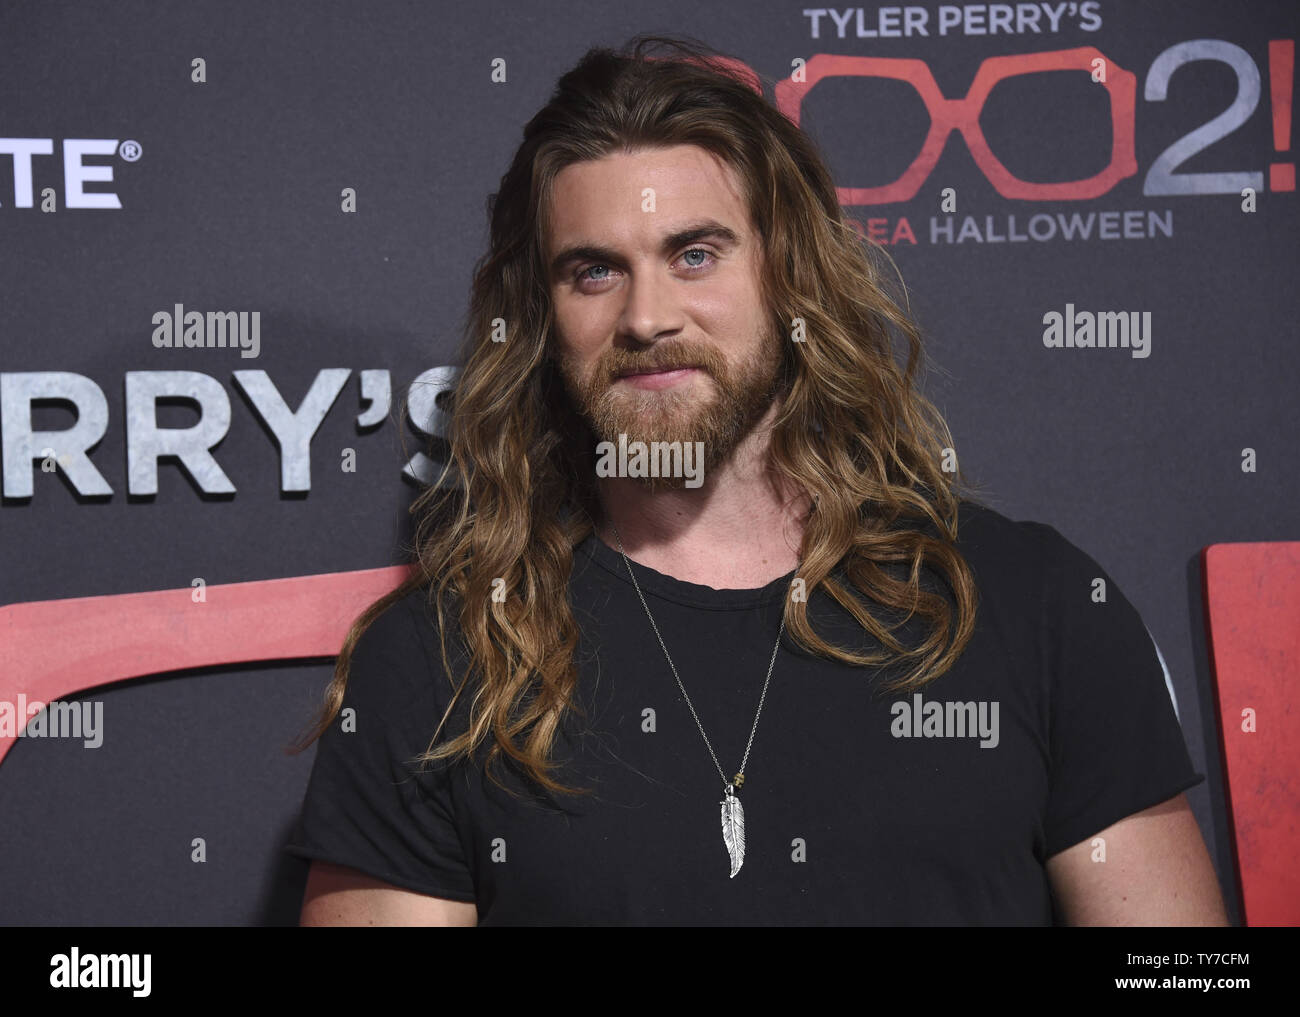 Madea / joe / brian. Cast Member Brock O Hurn Attends The Premiere Of The Motion Picture Comedy Tyler Perry S Boo 2 A Madea Halloween At The L A Live Regal Cinemas In Los Angeles On October 16 2017 Storyline